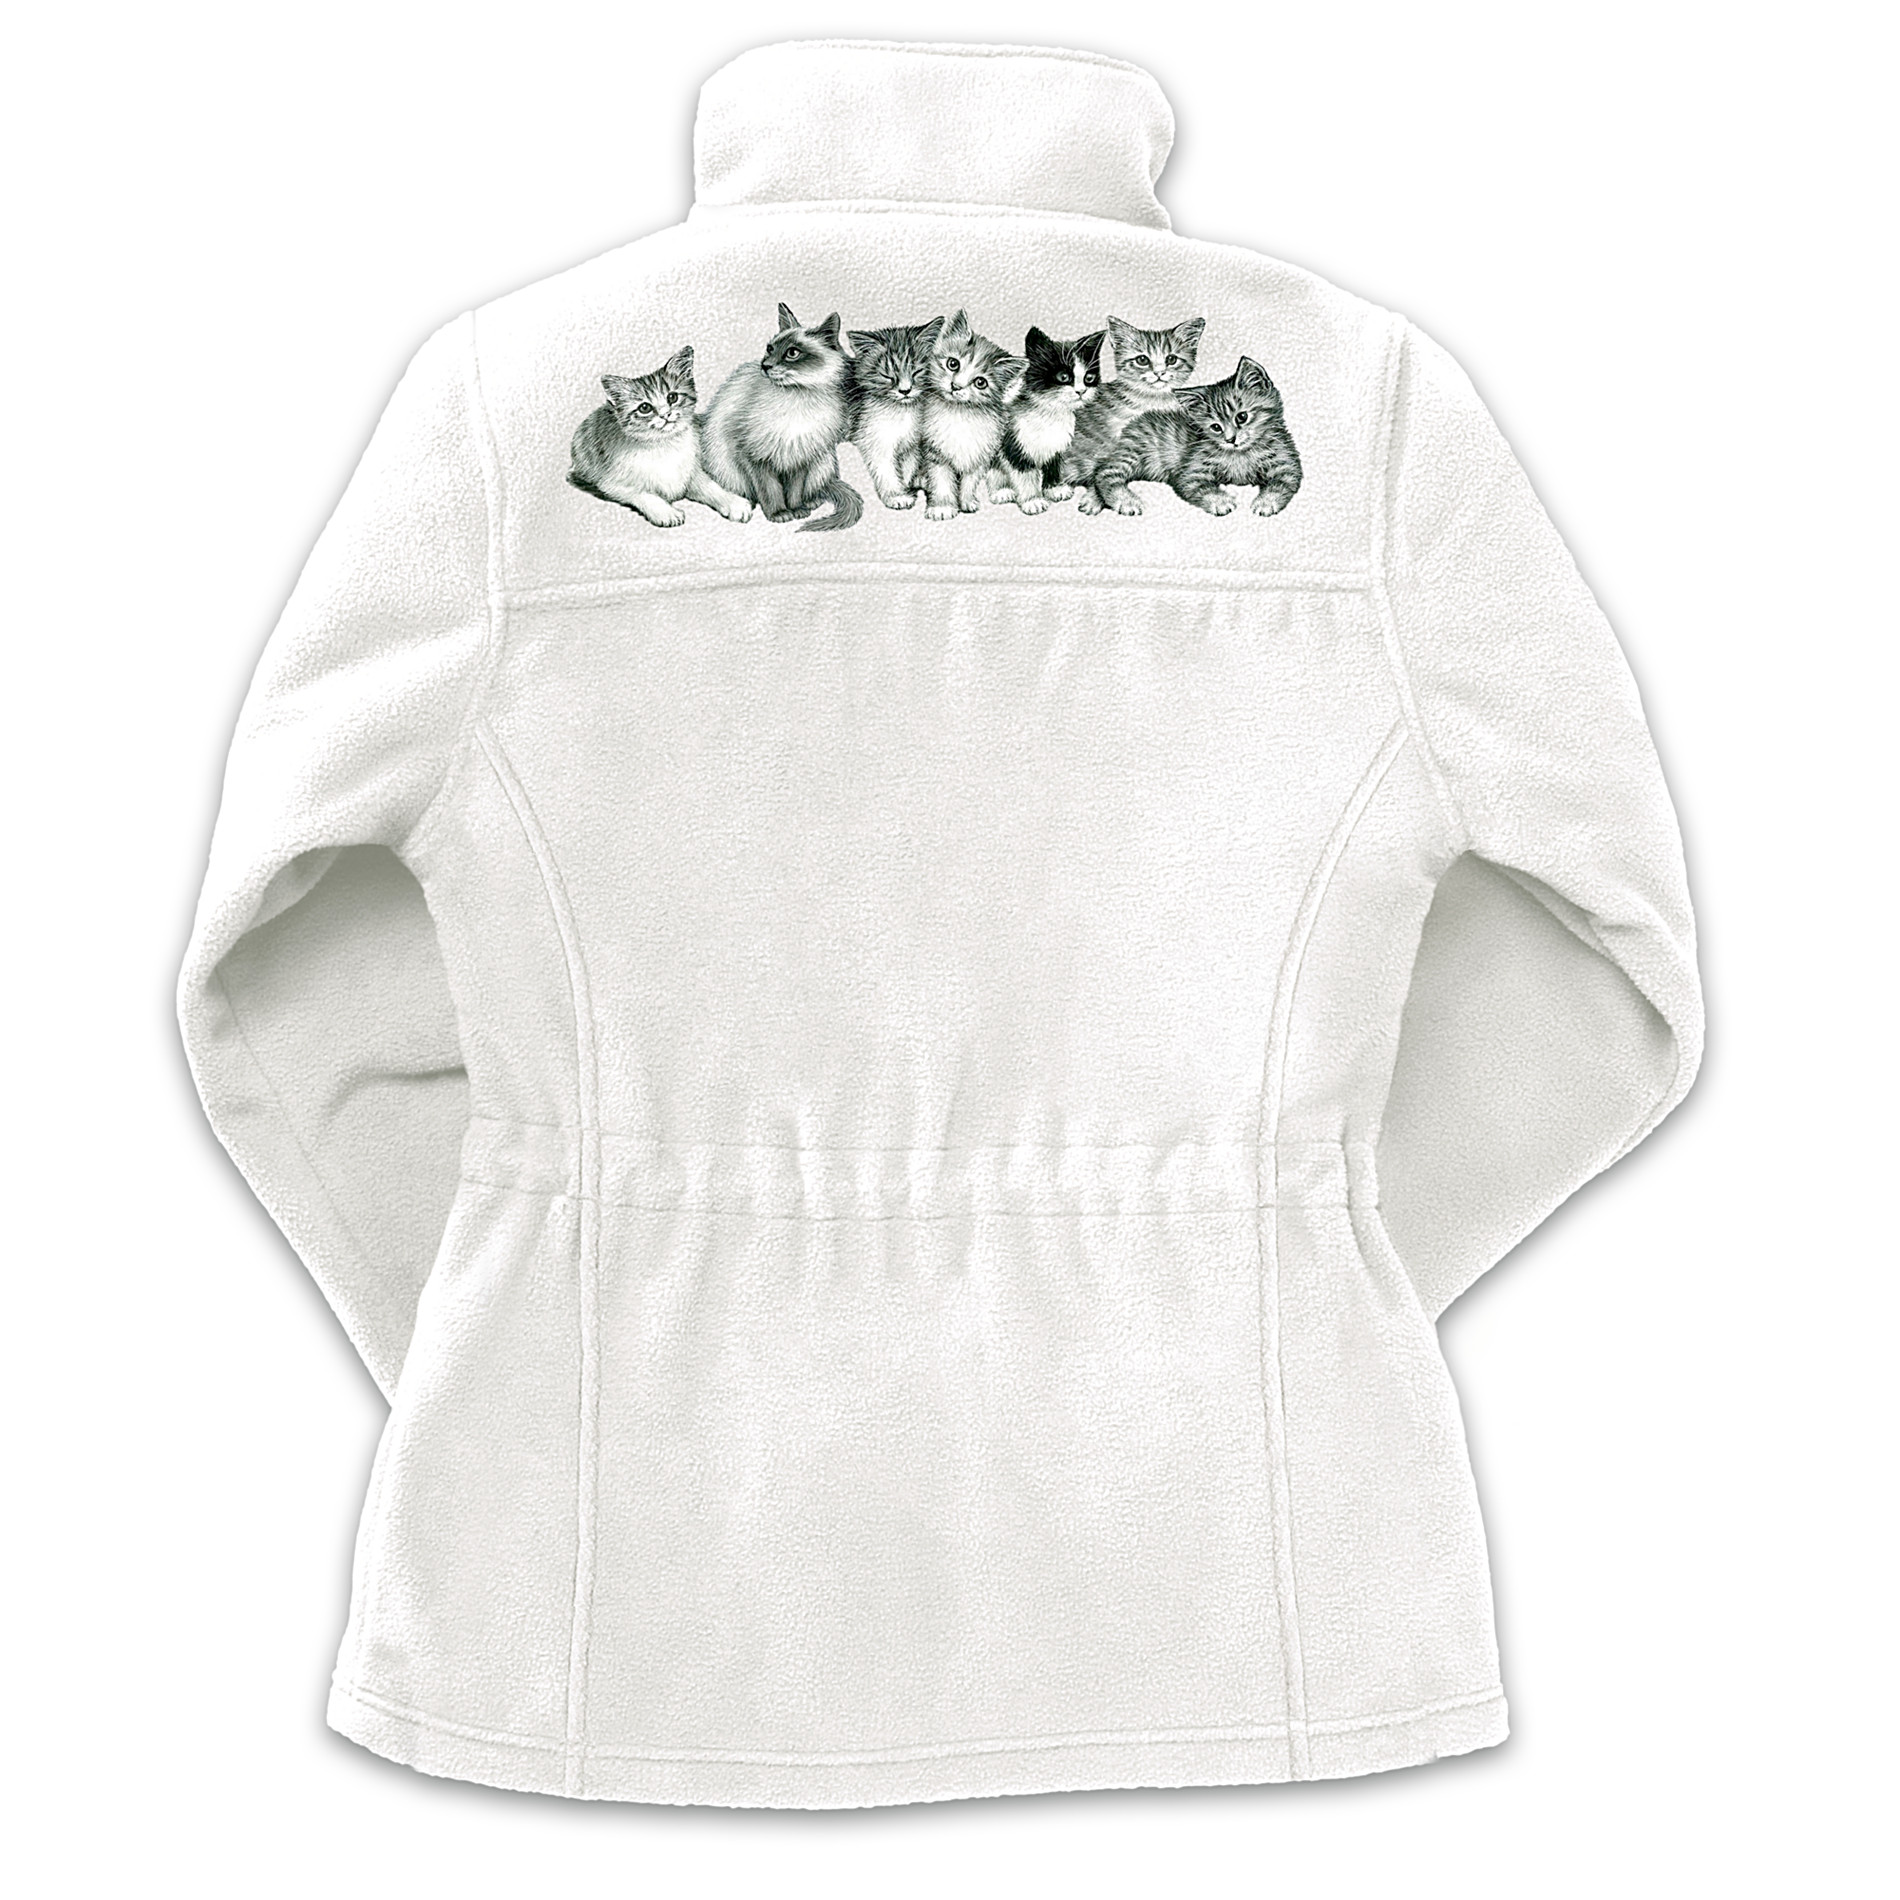 "The Bradford Exchange ""Purr-fect Playmates"" Reversible Women's Fleece Jacket at Sears.com"